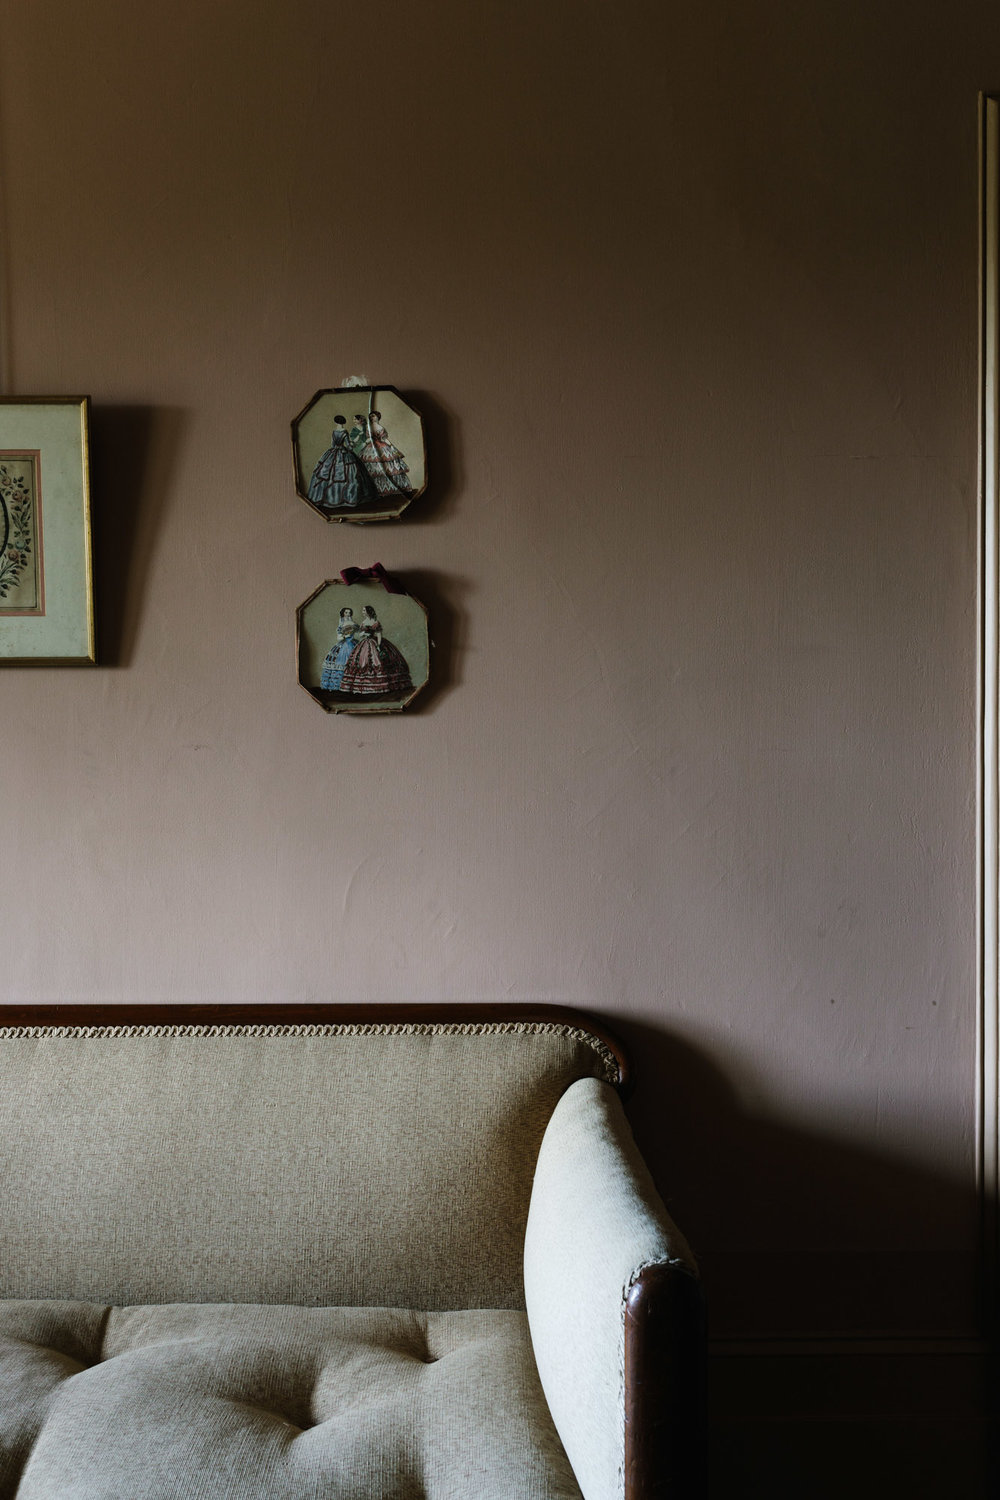 Marnie Hawson, Melbourne interior photographer, for Clarendon House, Tasmania and The National Trust